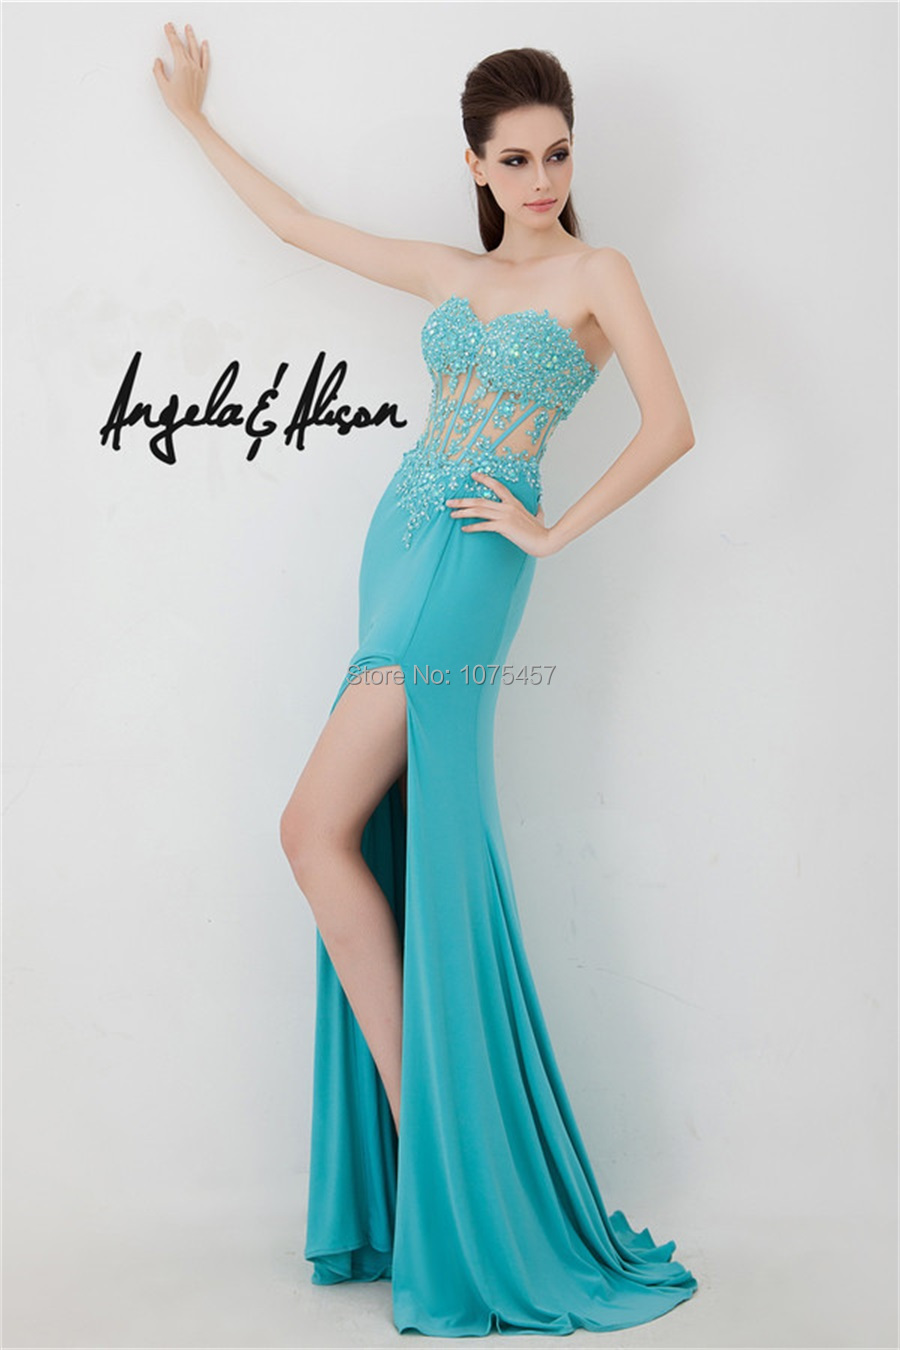 Aliexpress.com : Buy Free Shipping Sexy See Through Prom Dress ...